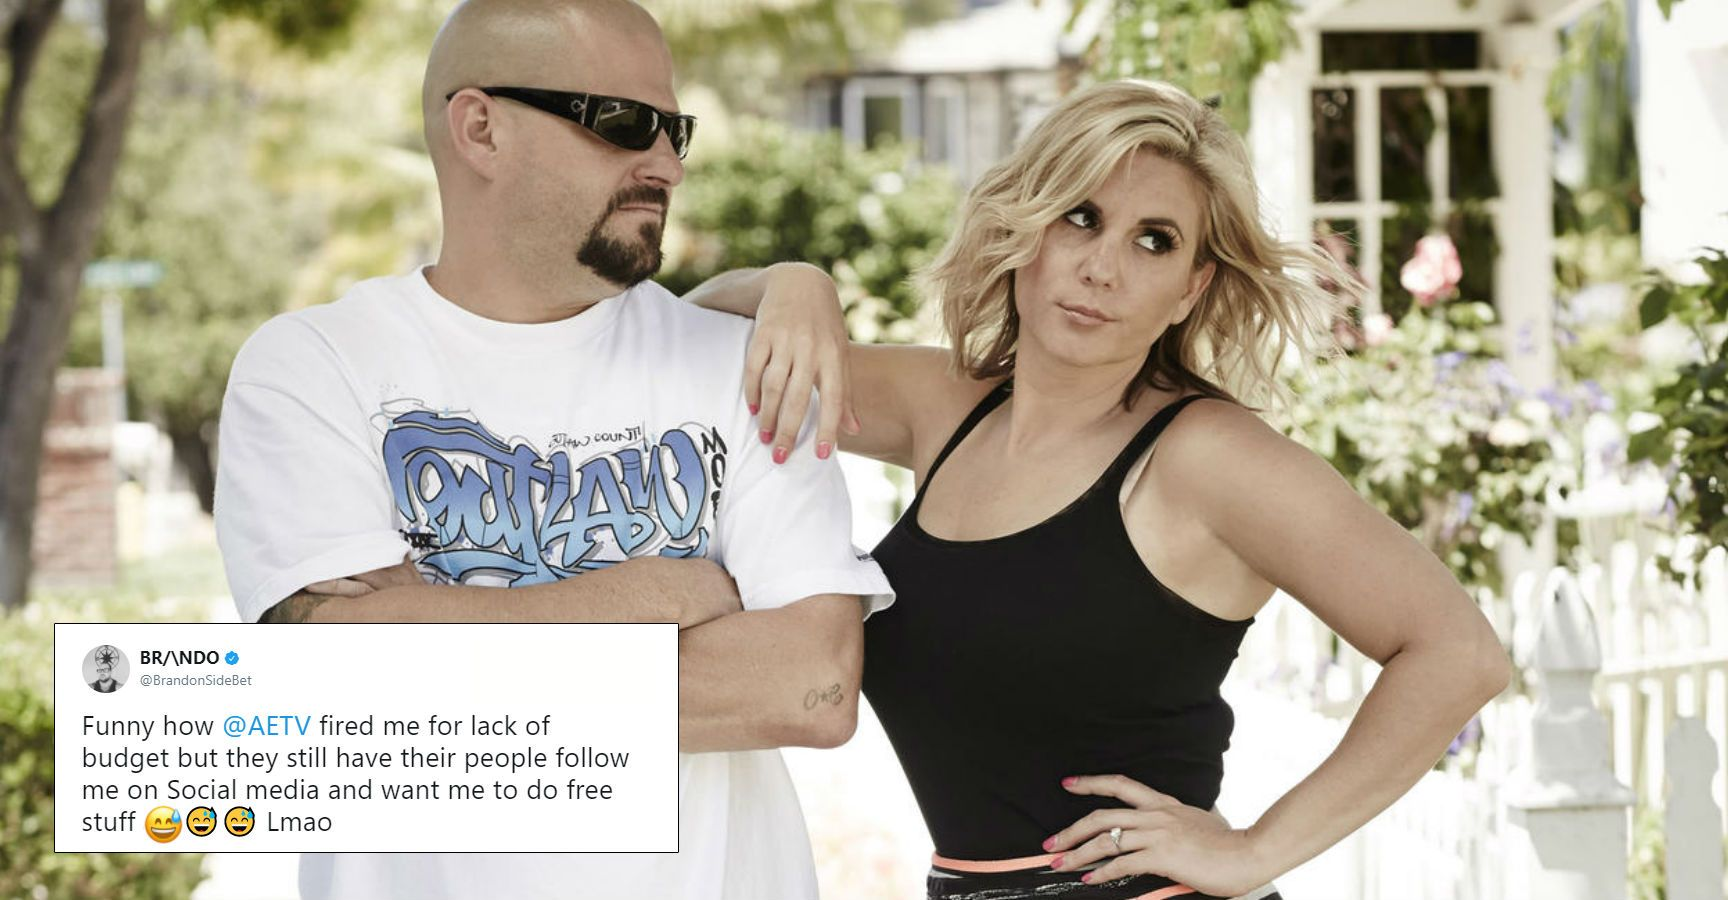 15 'Storage Wars' Secrets A&E Doesn't Want Us To Know